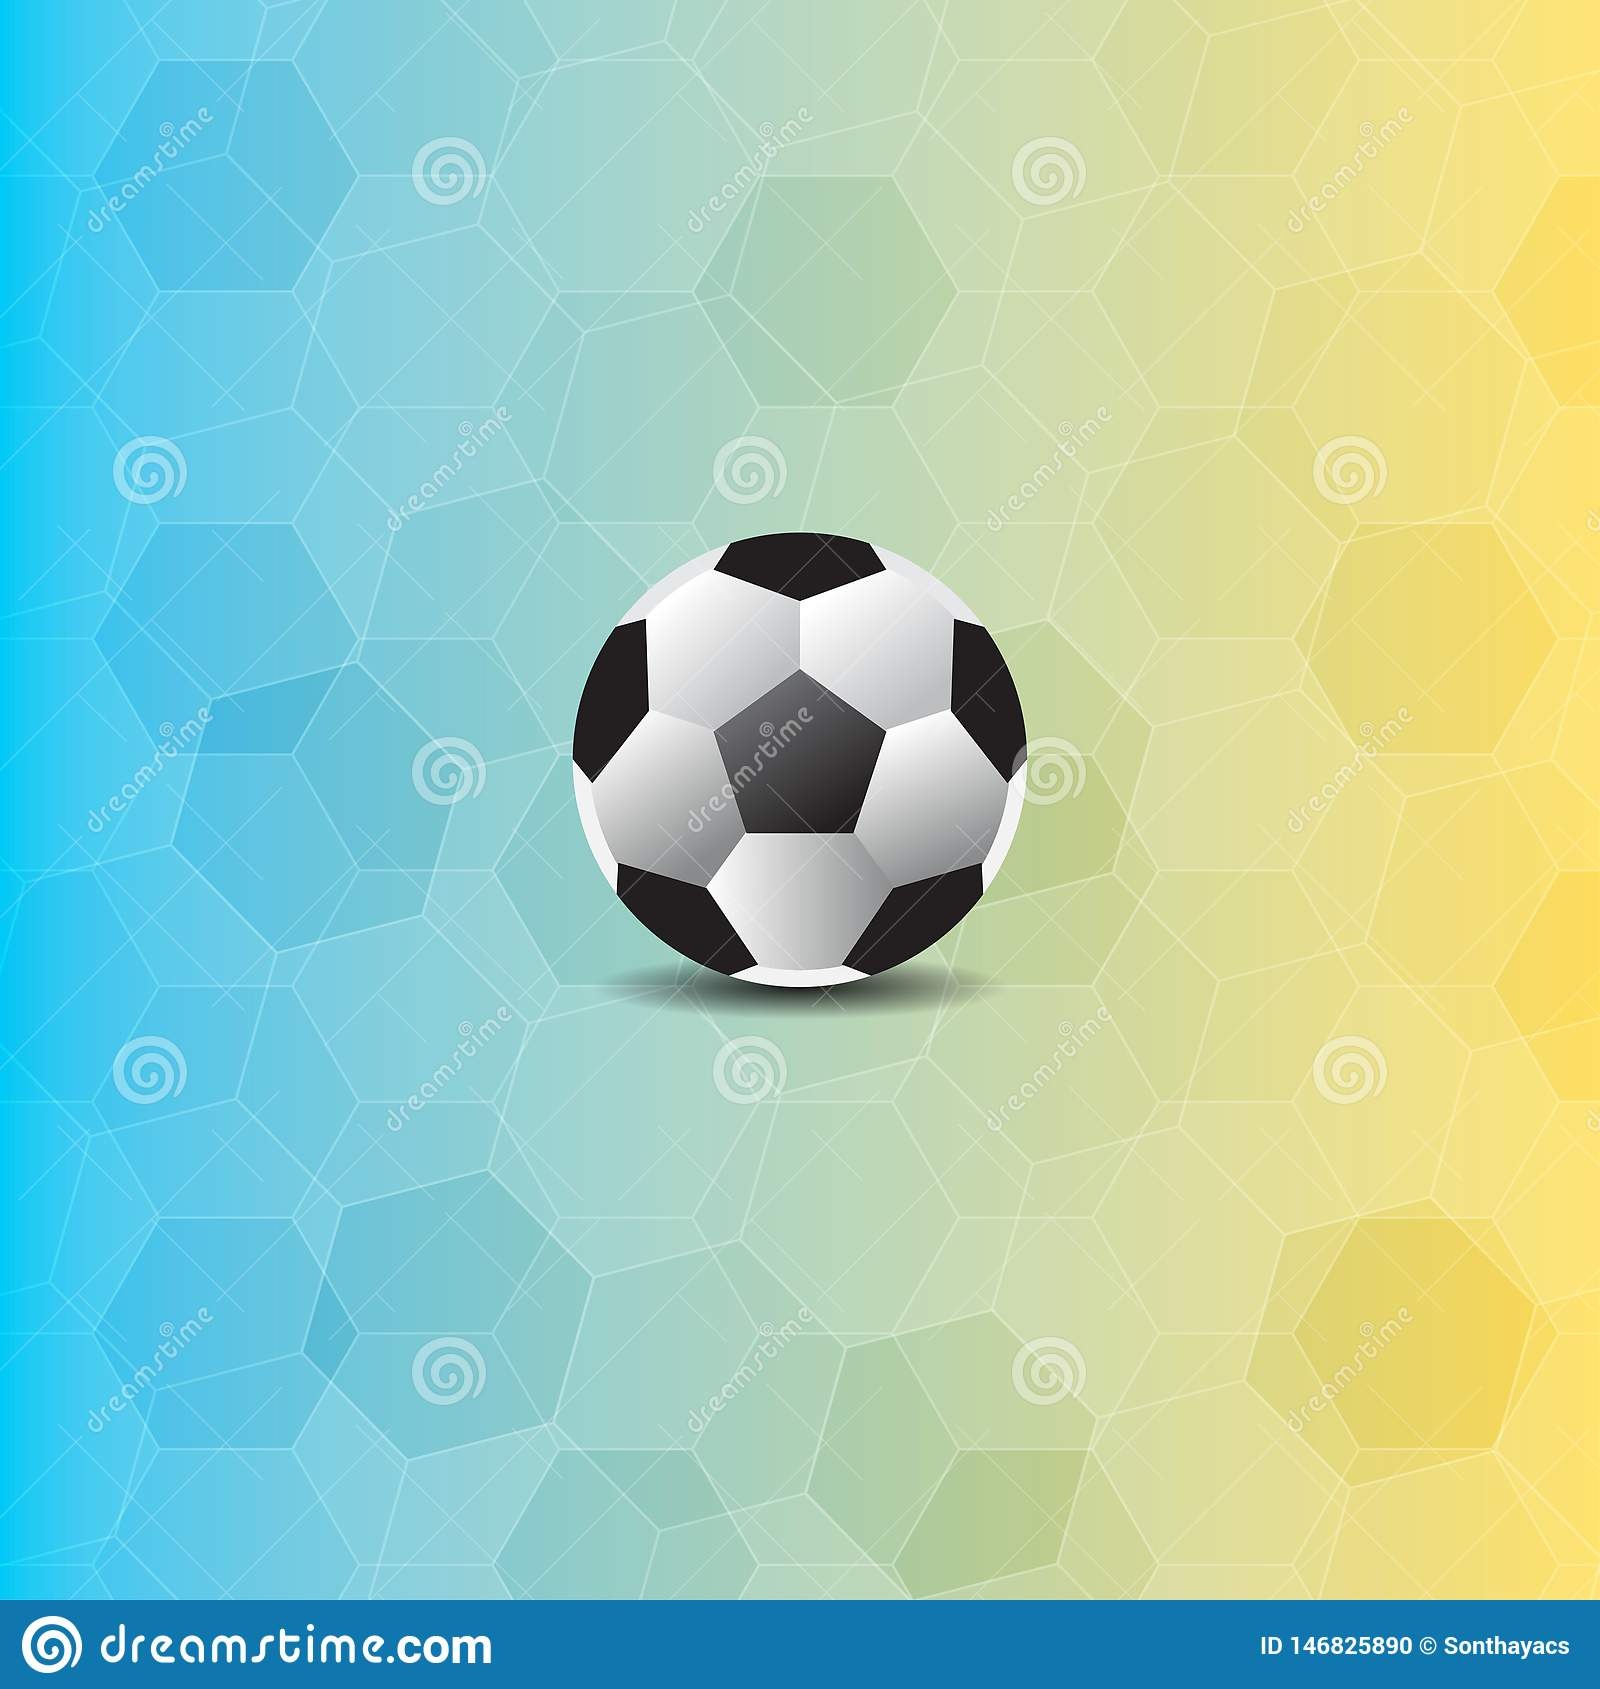 Soccer ball in polygon background